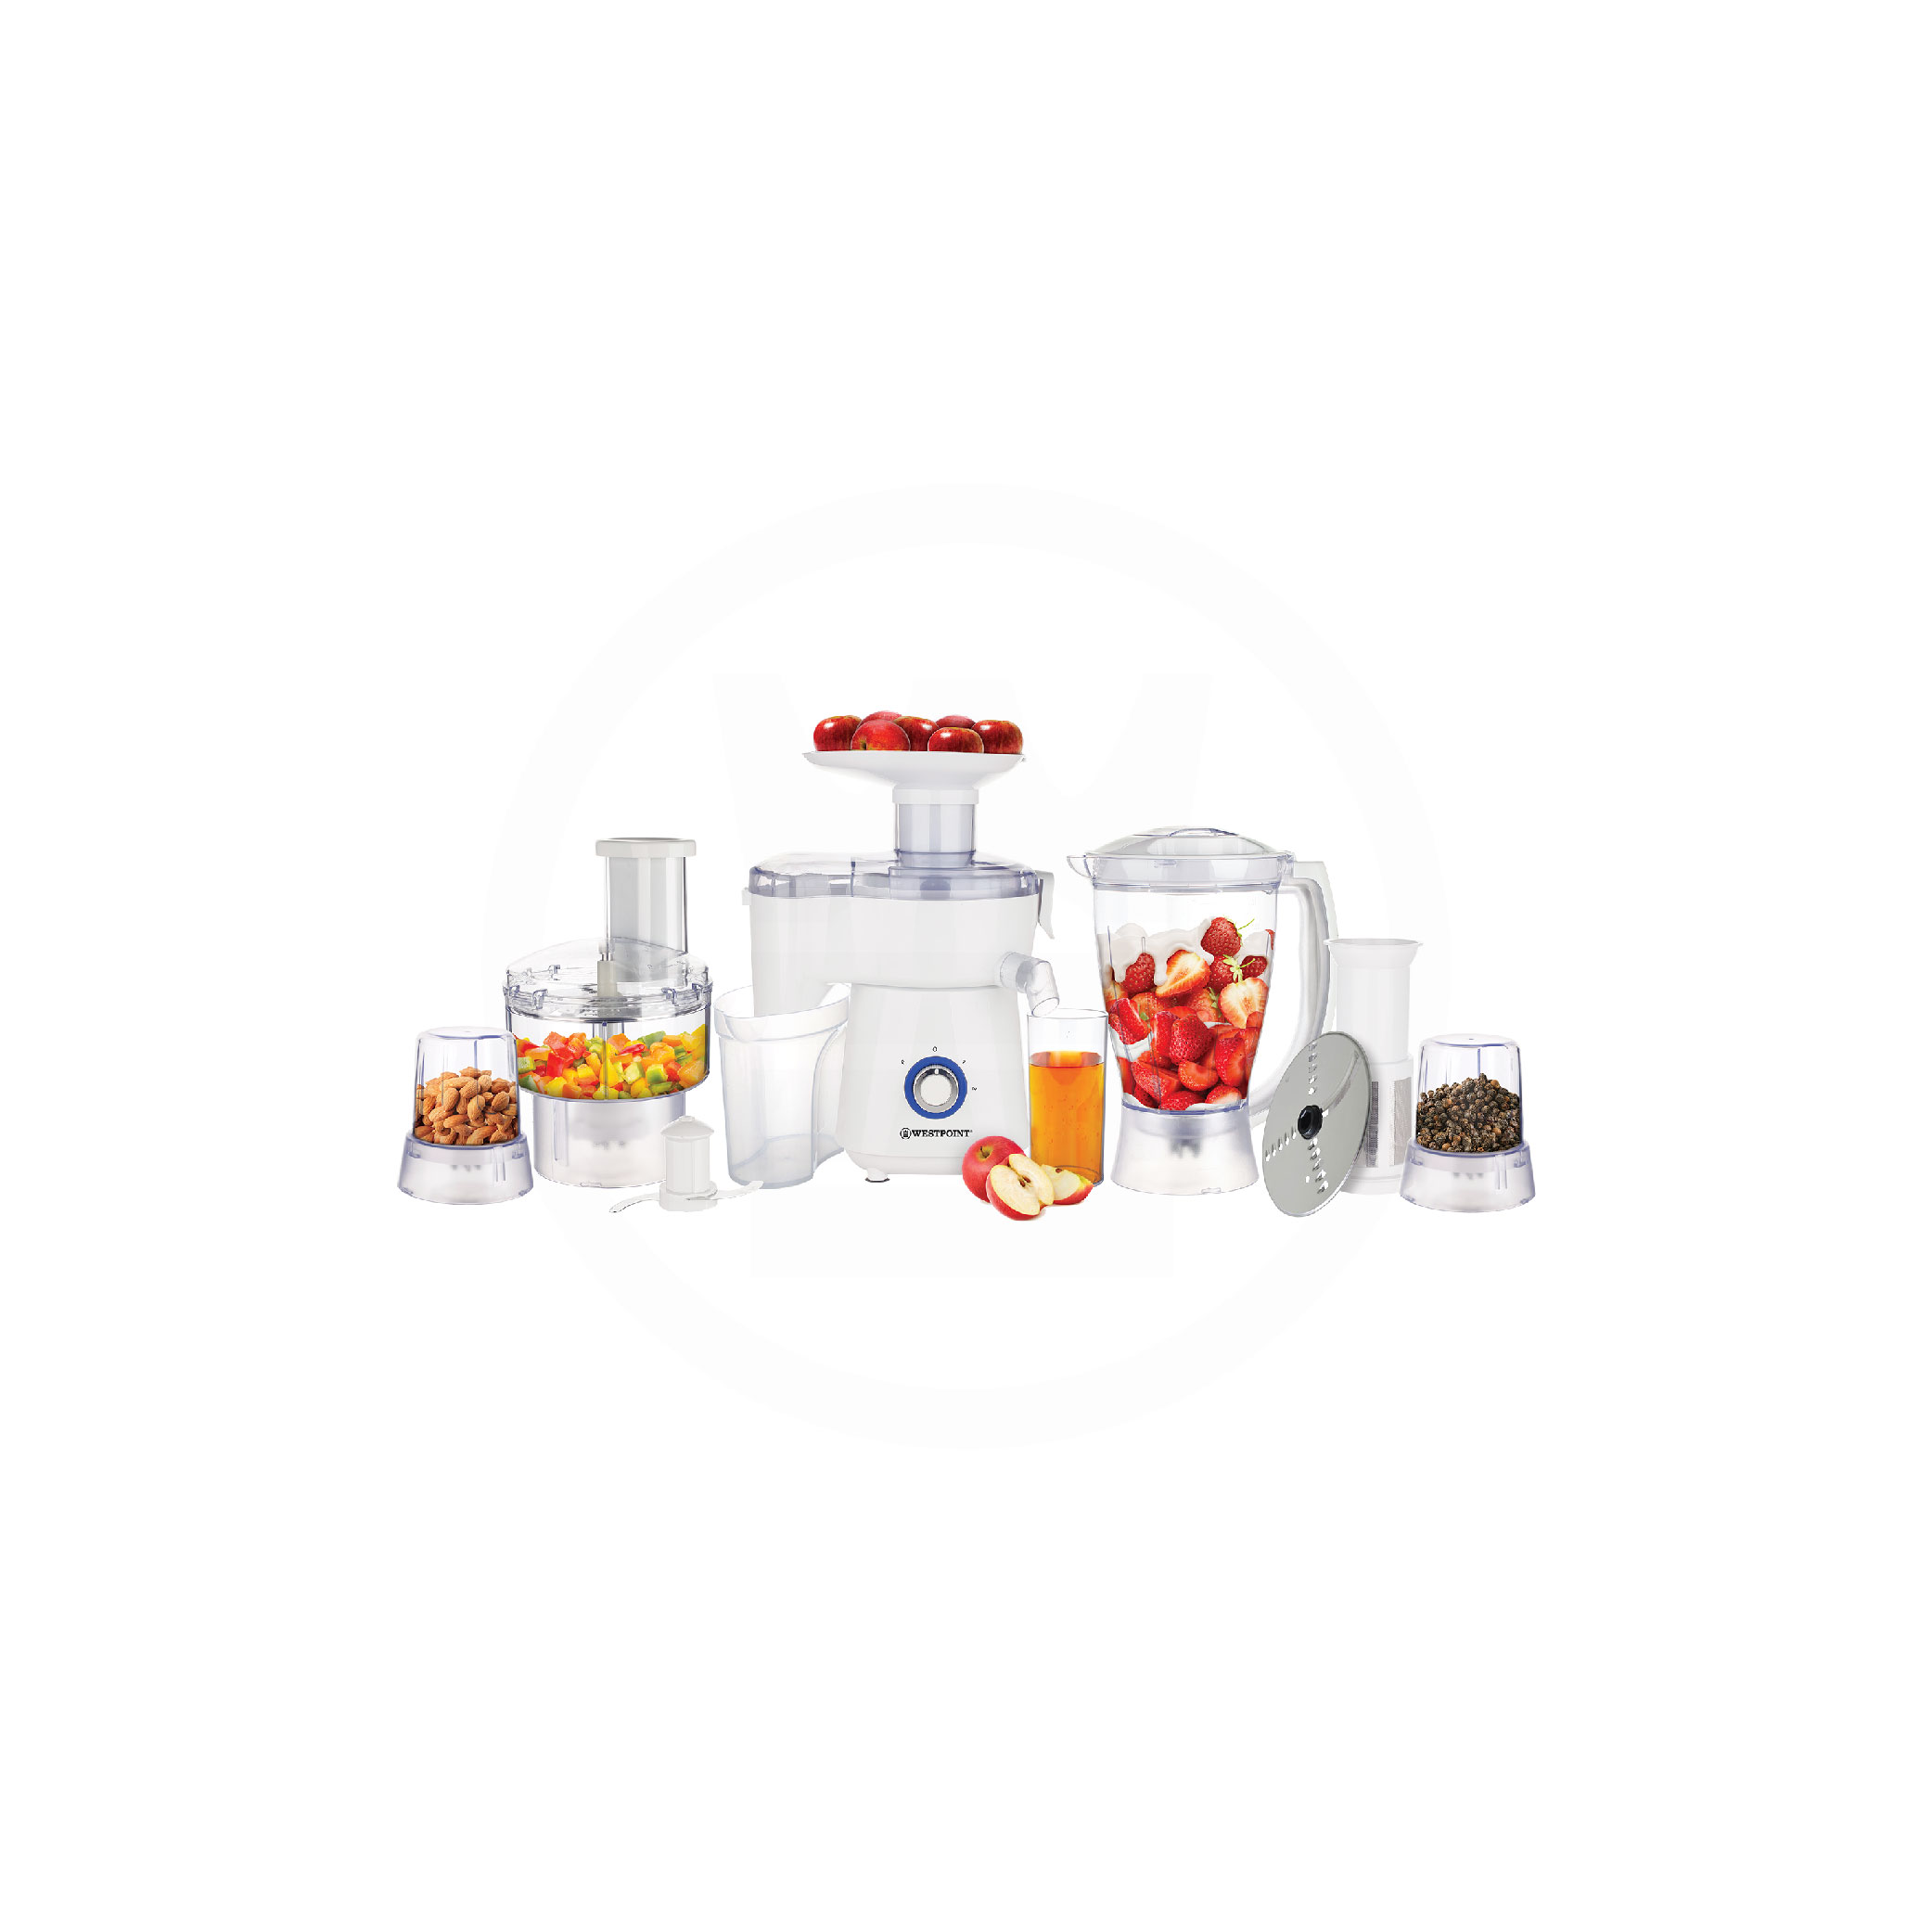 Westpoint Wf-2805 - 5 In 1 Jumbo Food Factory With Extra Grinder - White